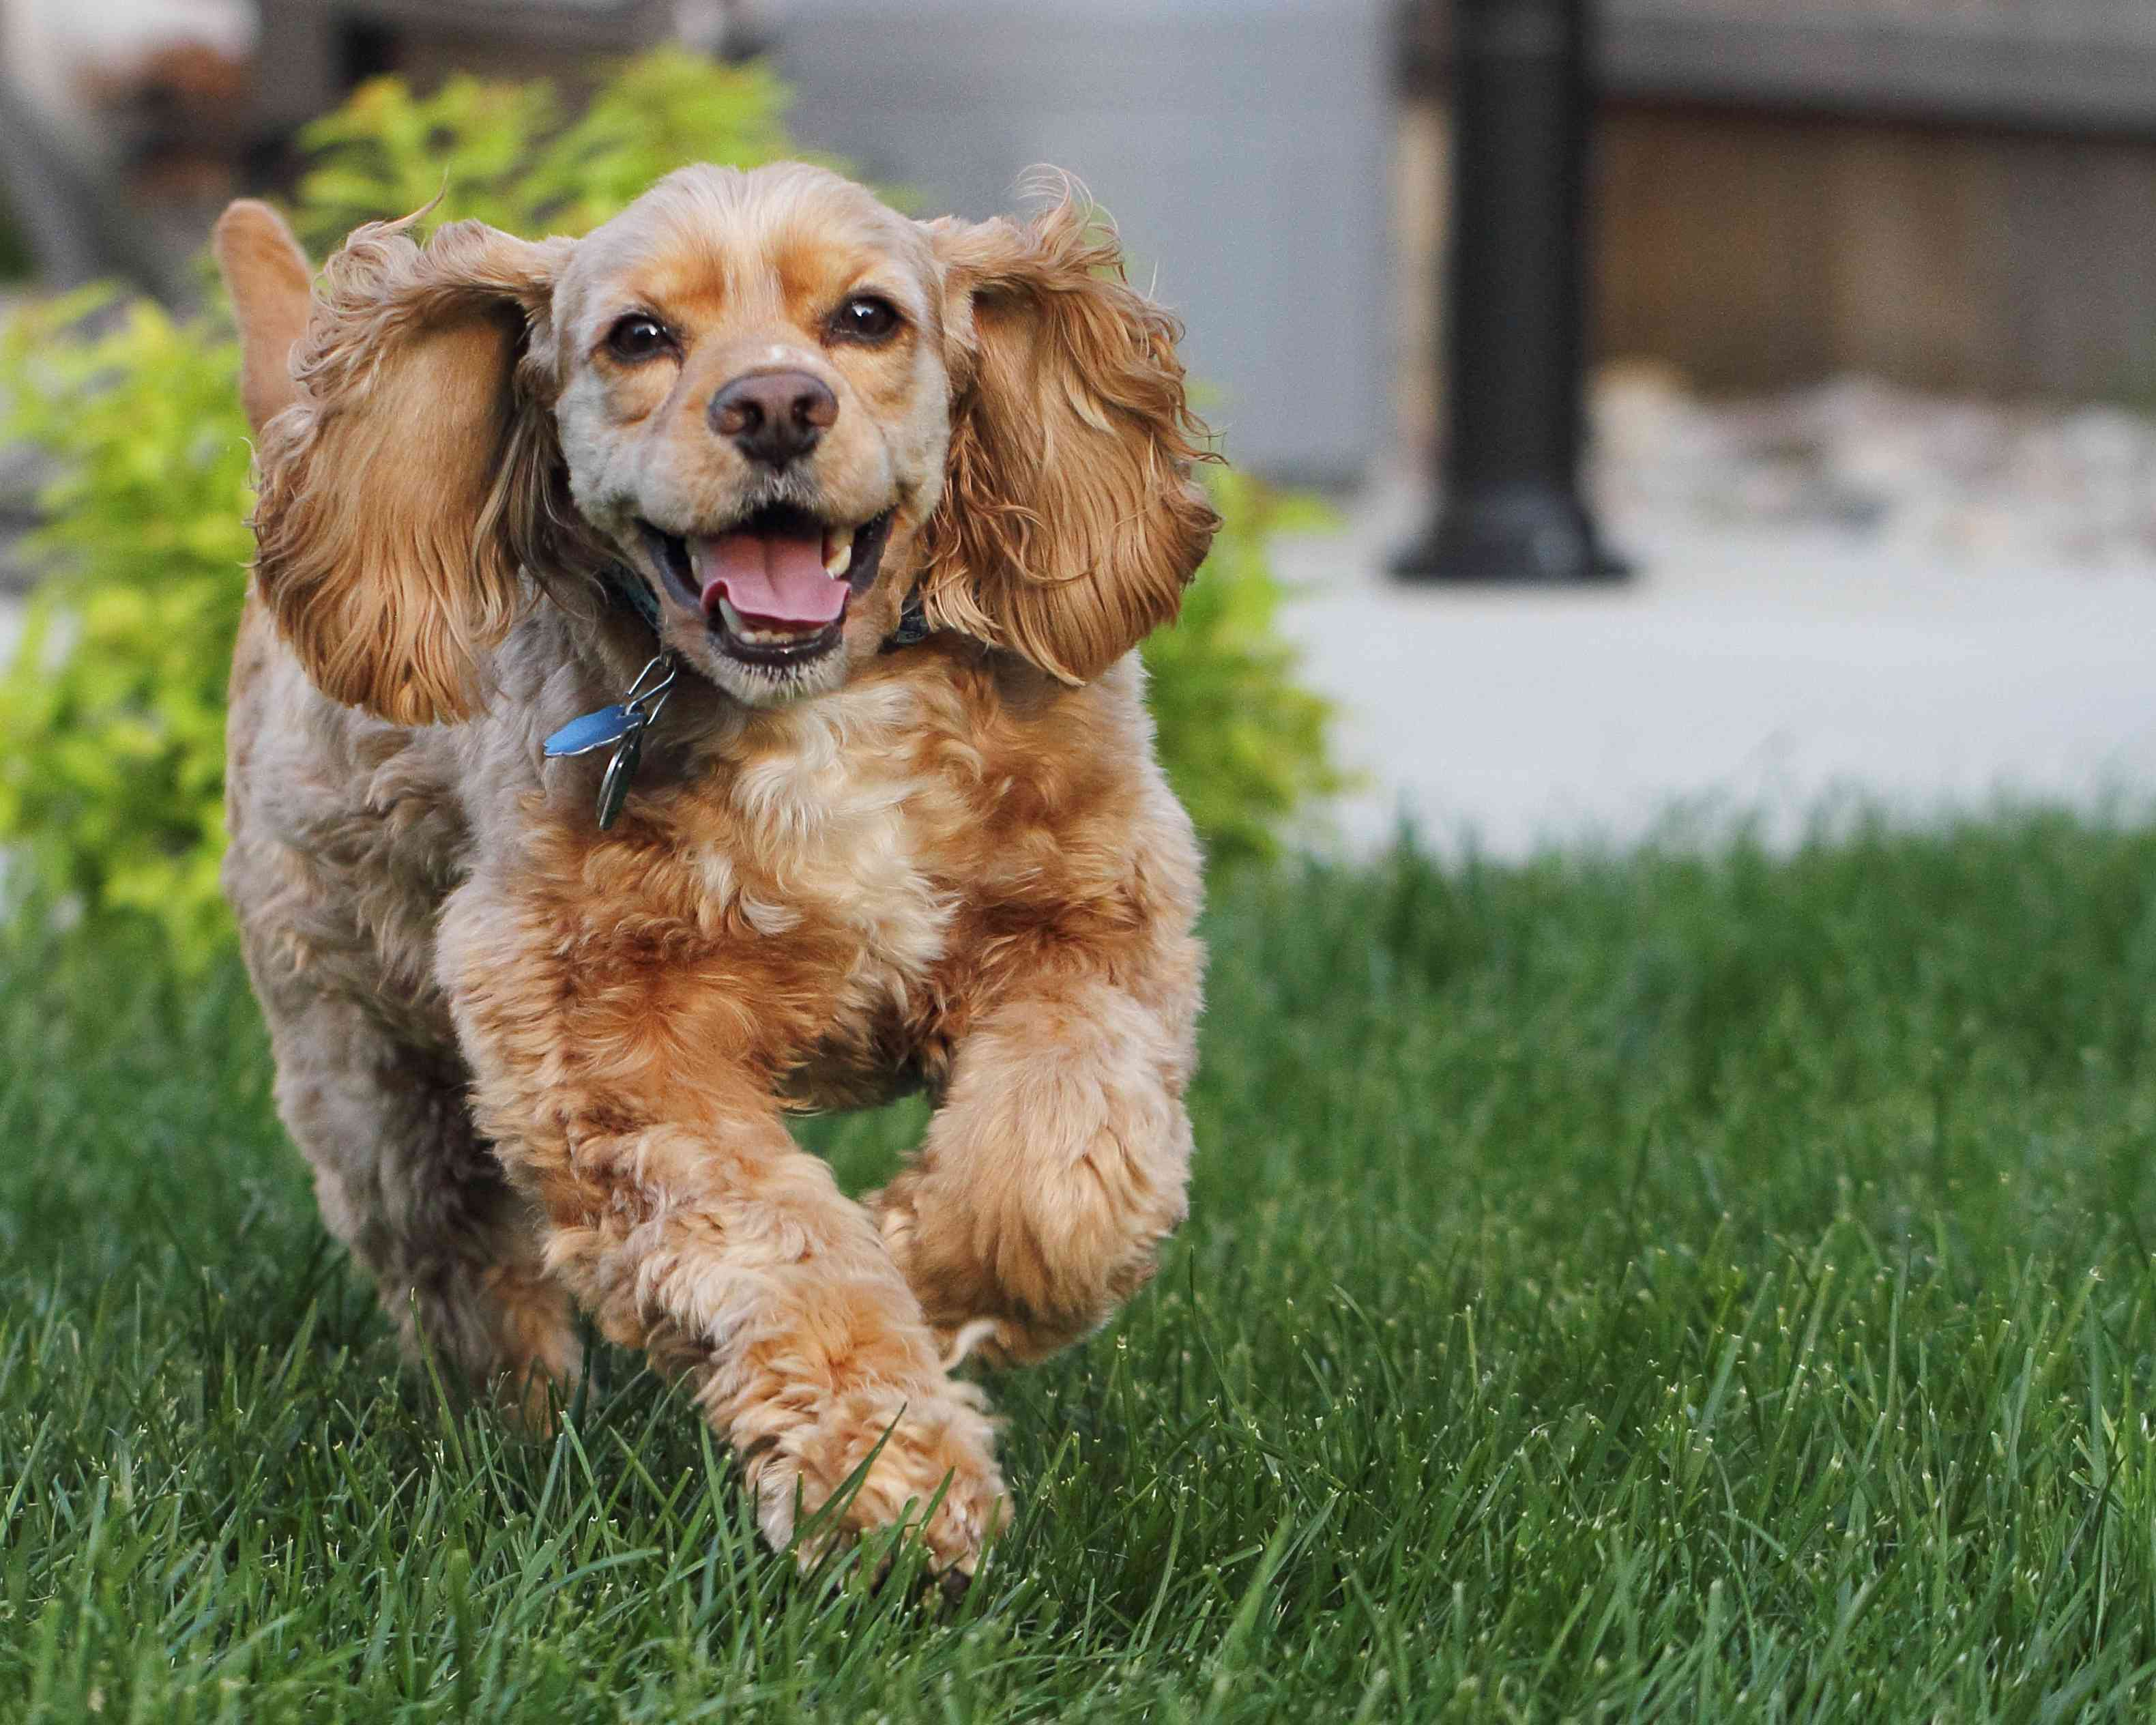 Smiling American Cocker Spaniel running in the grass.